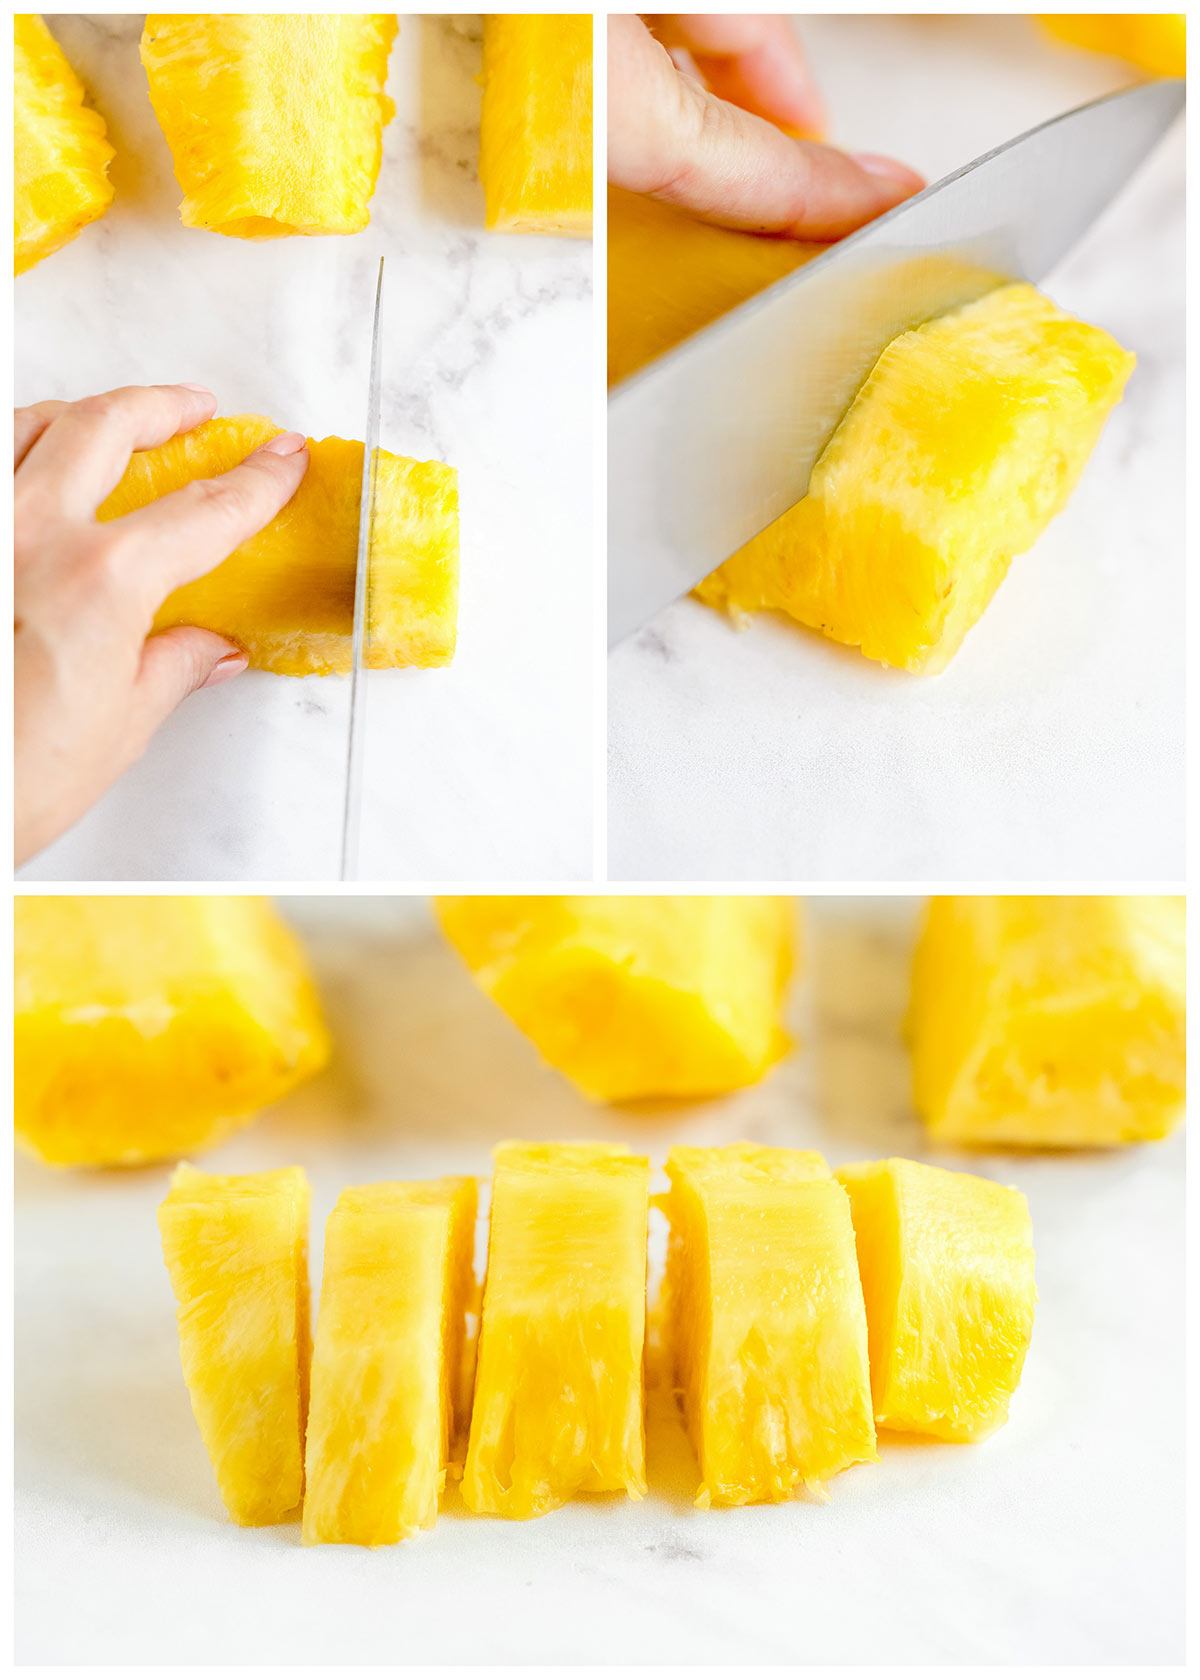 slicing pineapple into cubes without any skin